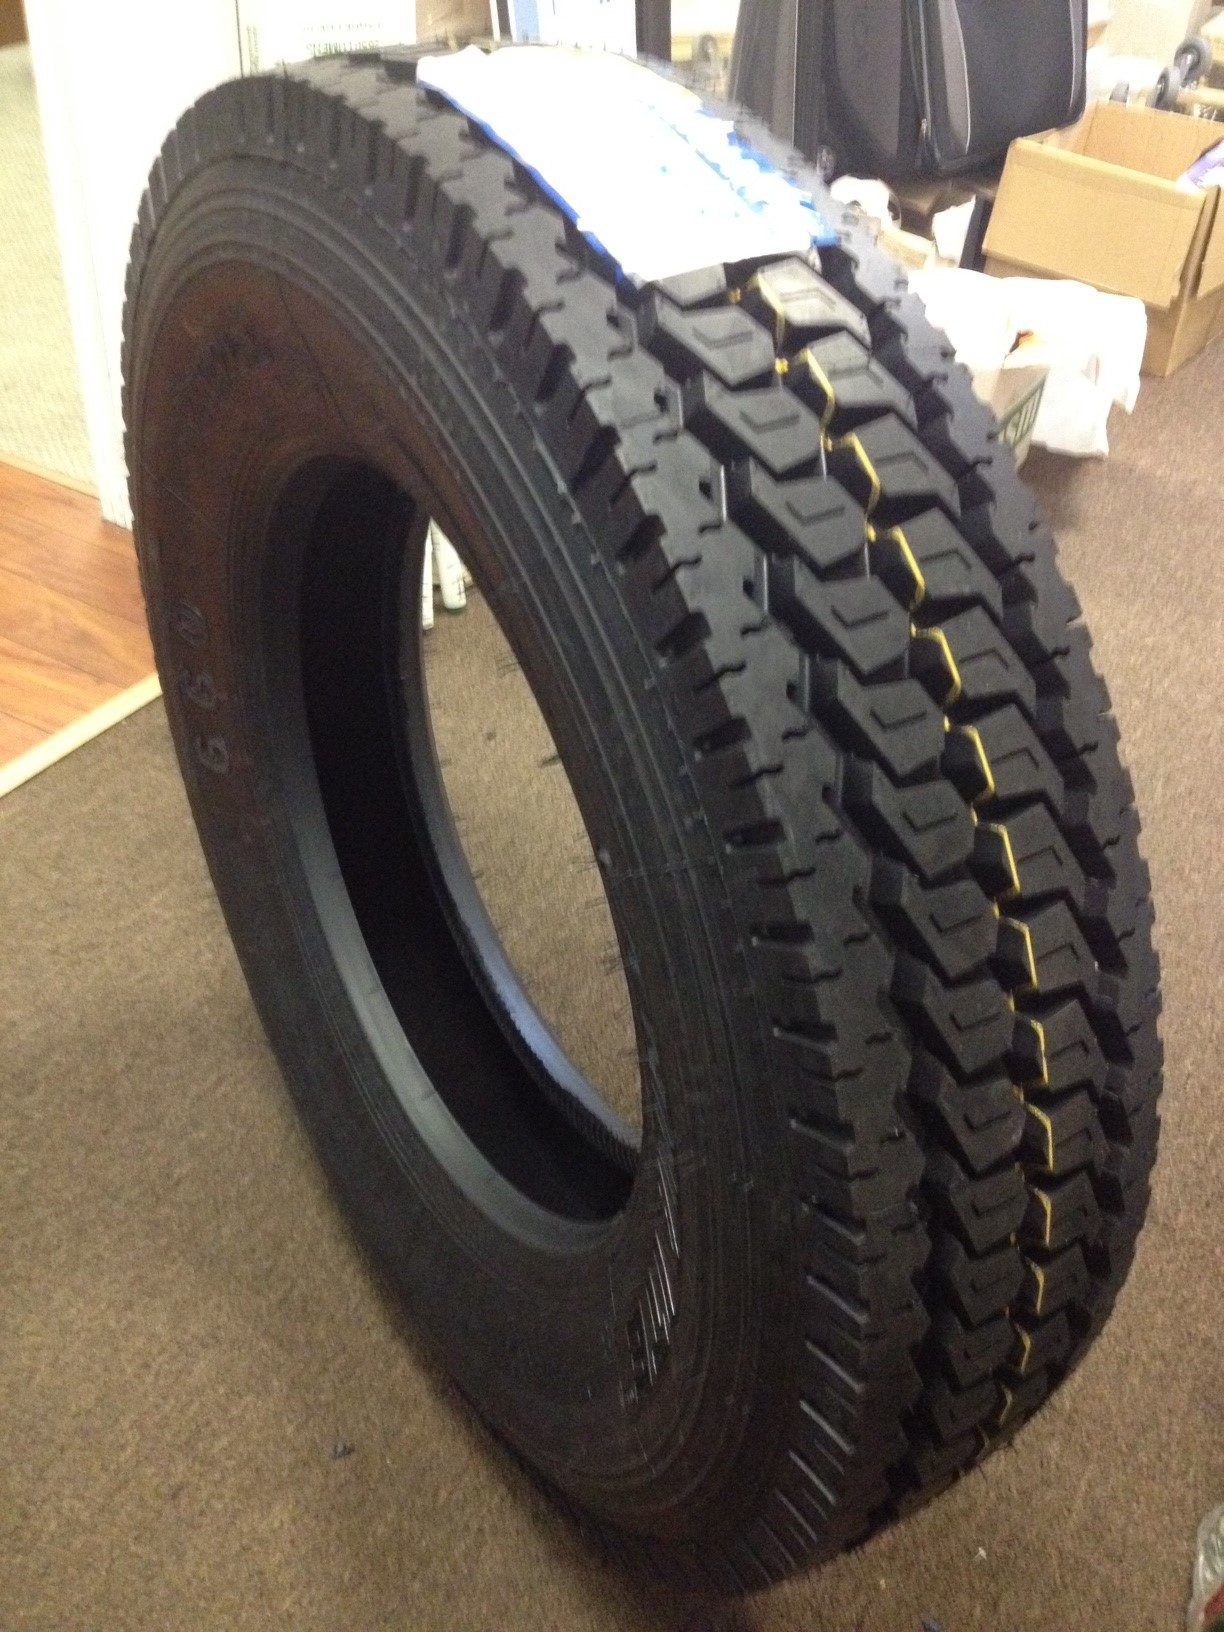 11R24.5 ROAD WARRIOR RADIAL (2- DRIVE TIRES) 16 PLY RATING